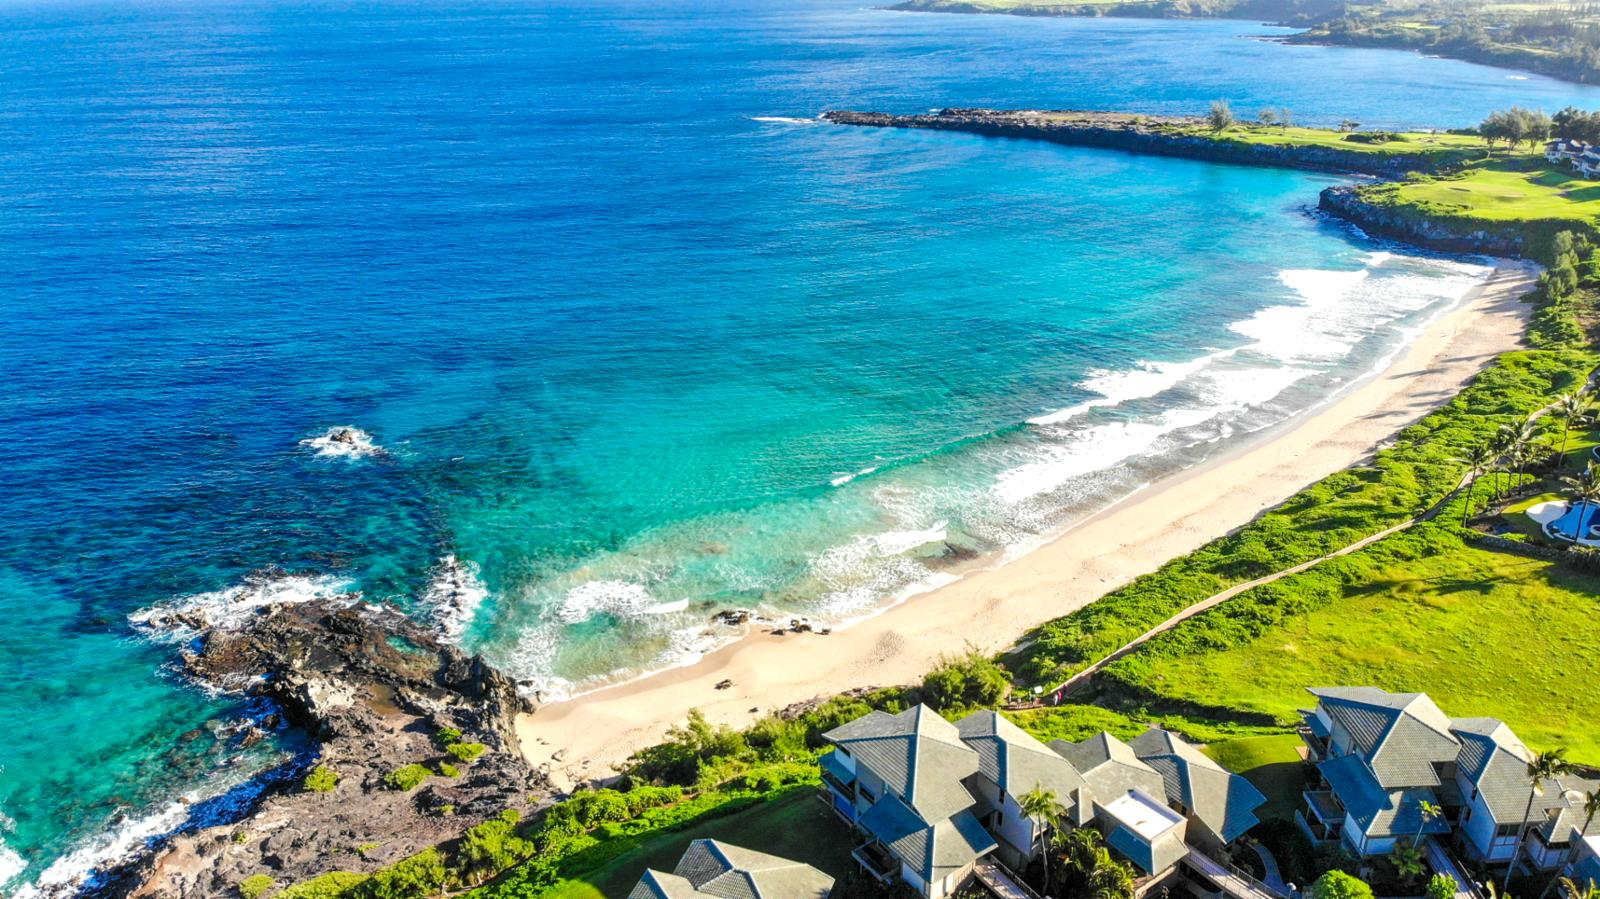 Birds eye view of The Kapalua Coastal Trail